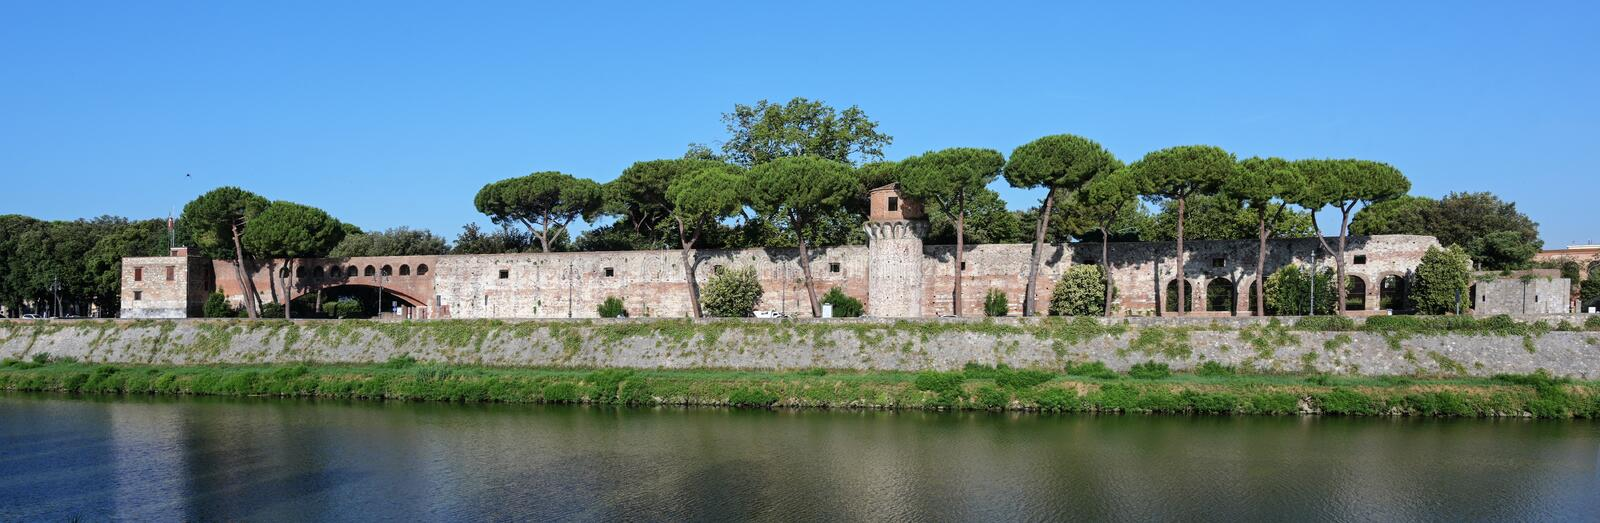 Panorama of the Cittadella Nuova New Citadel, now called Giardino Scotto Scotto`s Garden an old fortress in Pisa at the river. Arno, Italy royalty free stock images